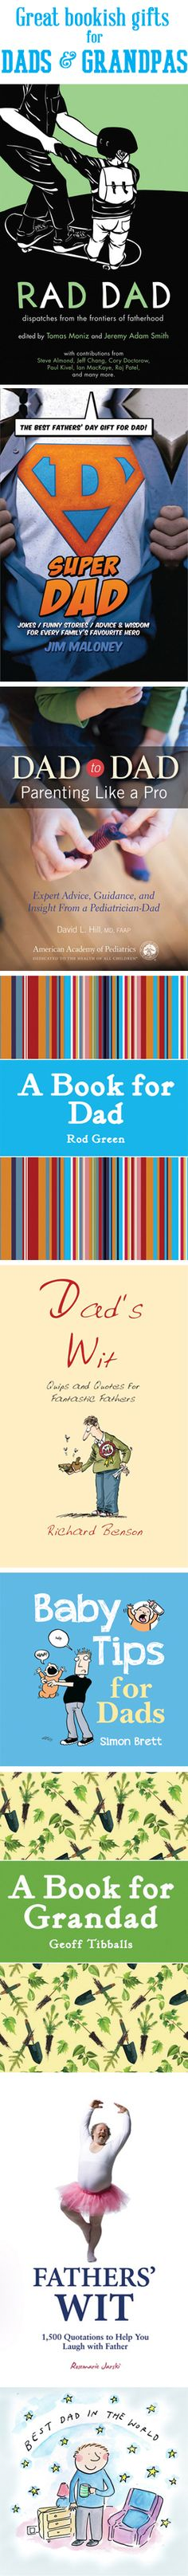 Give Dad or Grandpa something special this Father's Day: Books! #FathersDayGifts